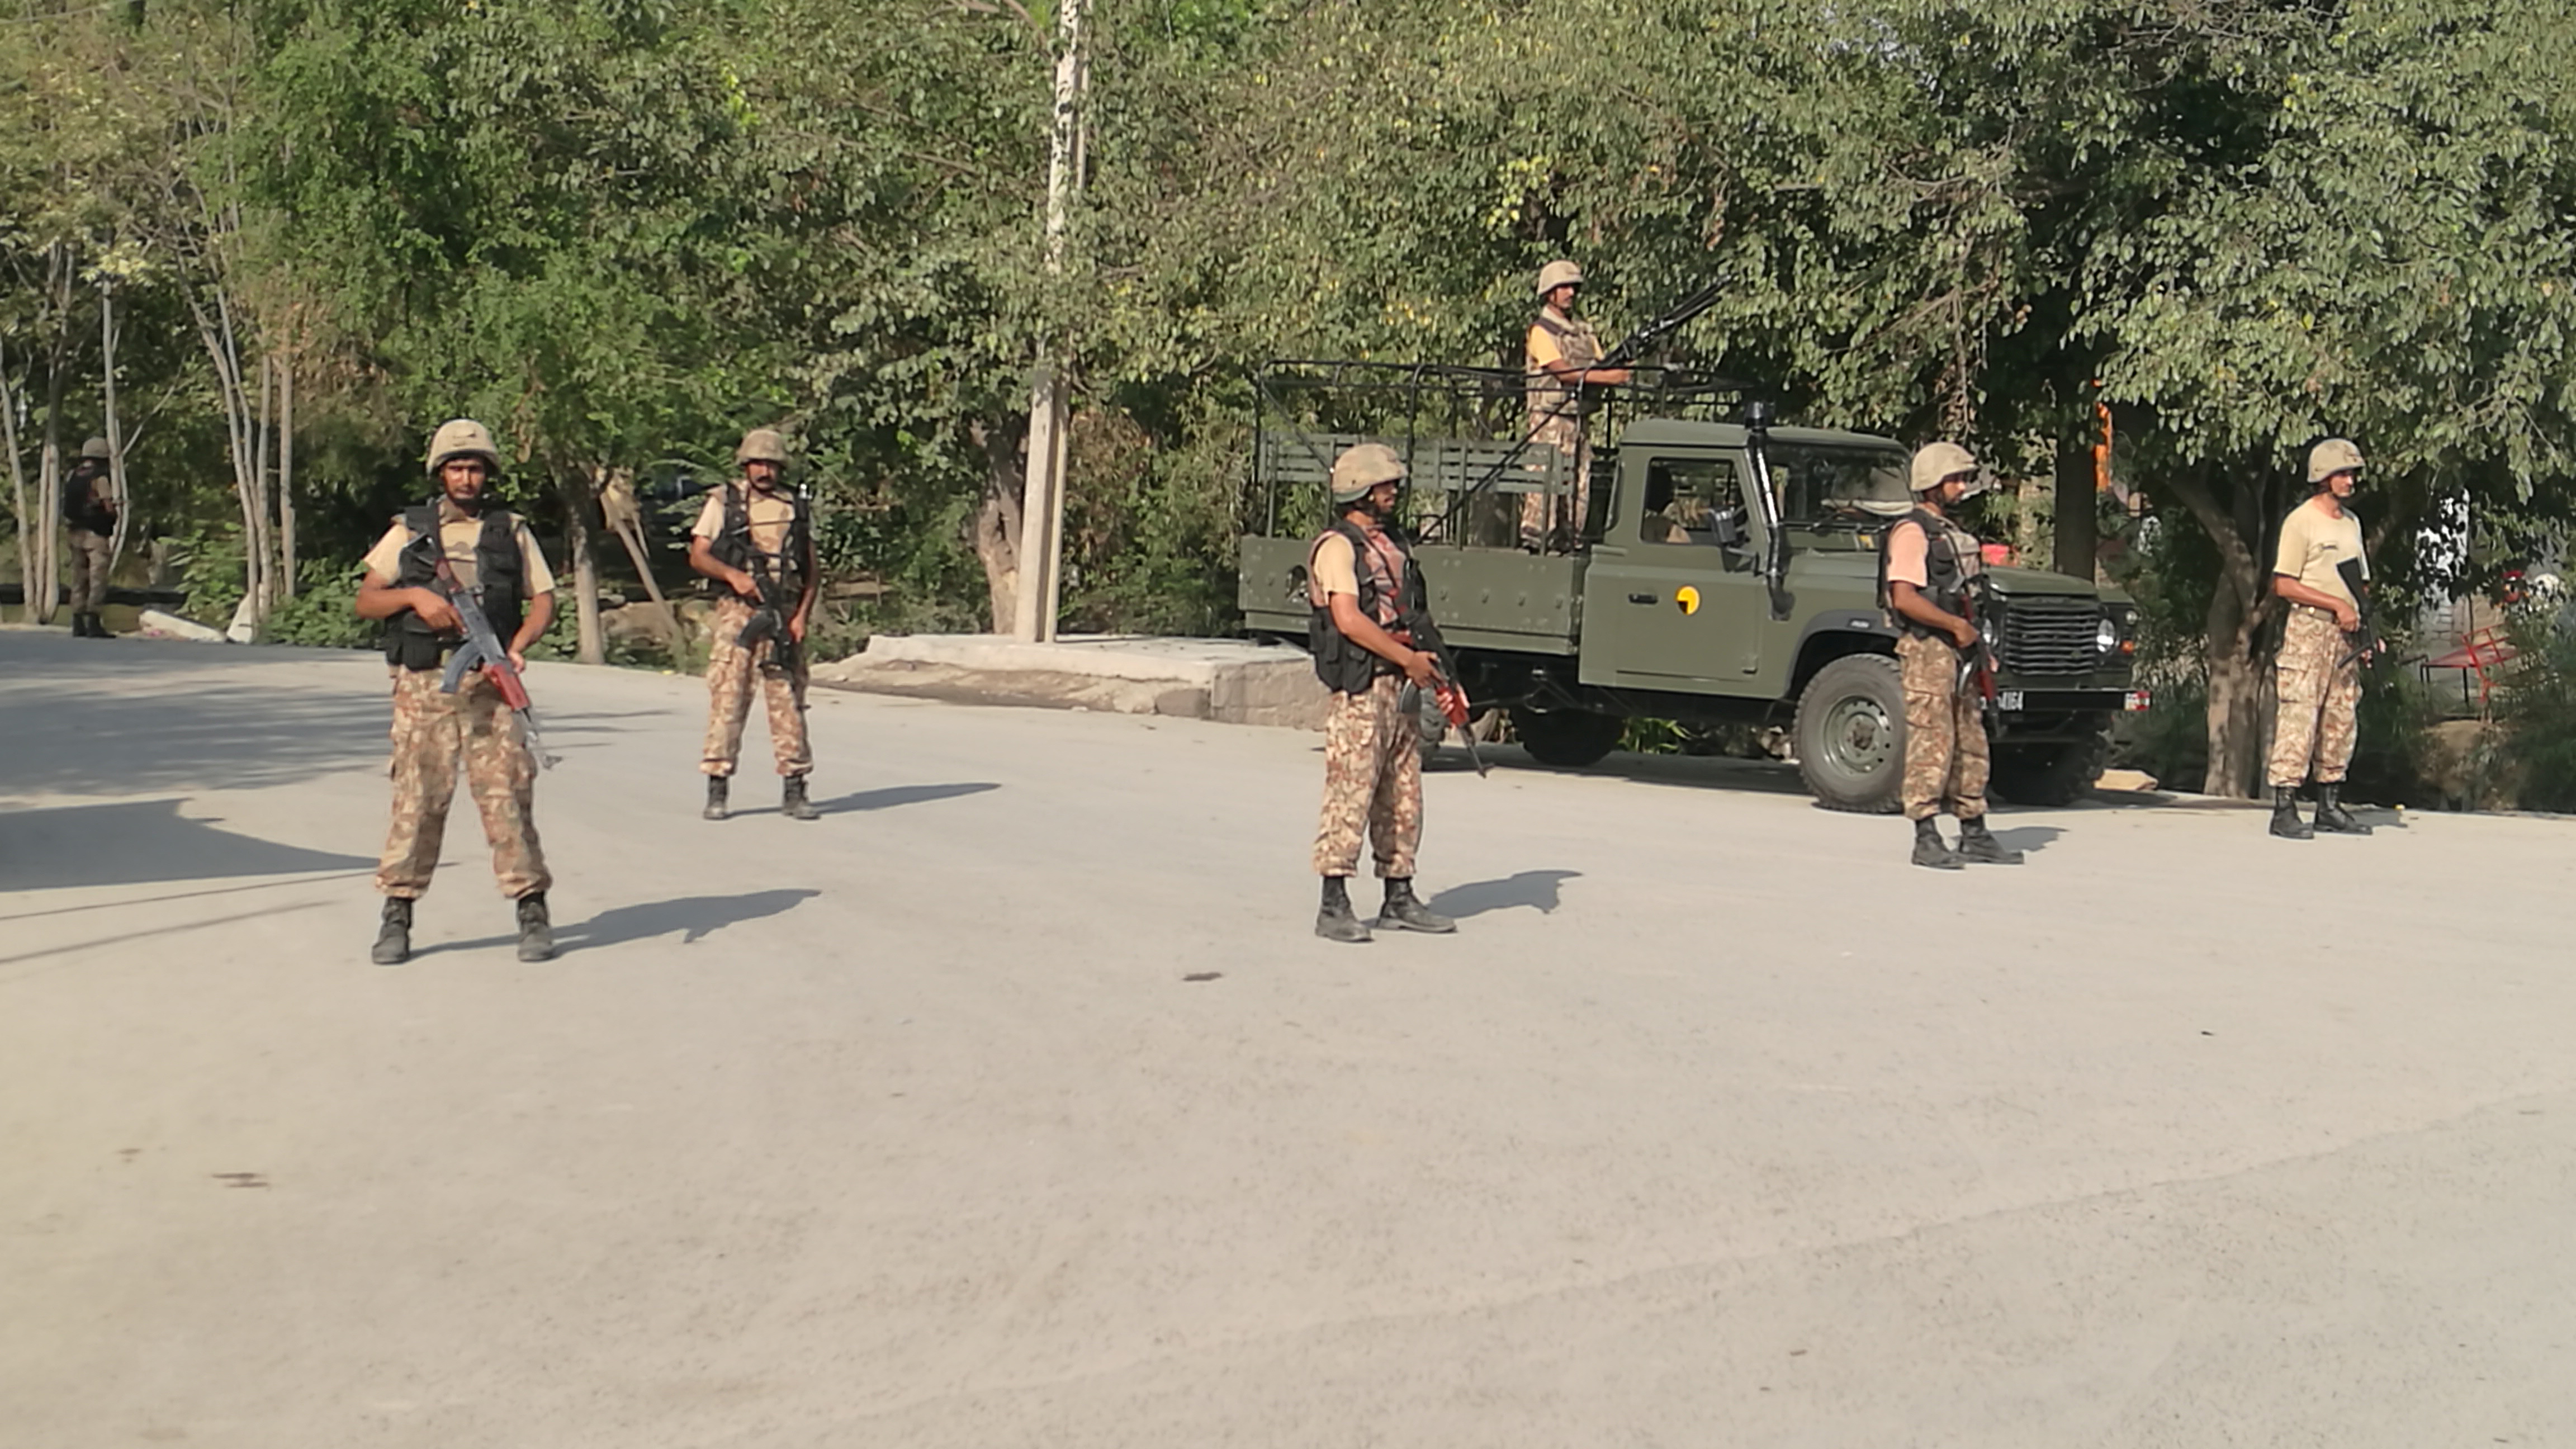 Army soldiers stand guard at street after suicide bombers attacked a Christian neighborhood in Khyber Agency near Peshawar, Pakistan, September 2, 2016.